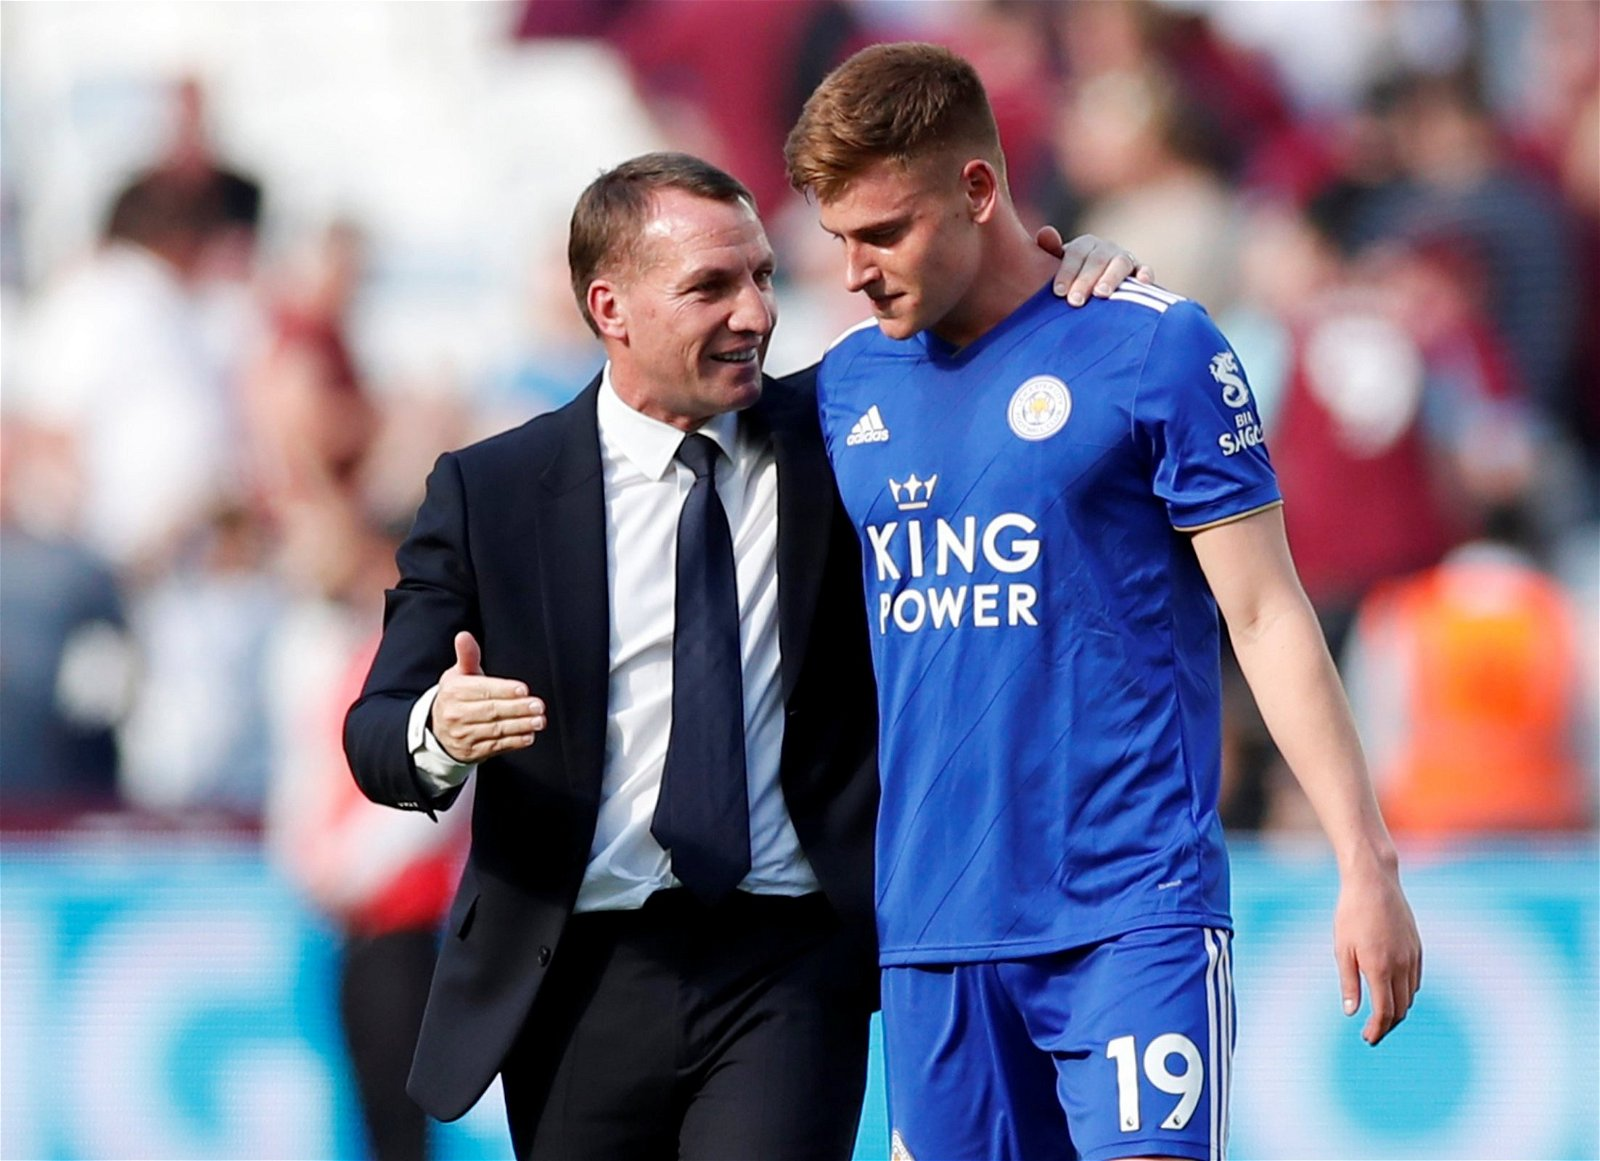 2019 04 20T160039Z 1318965112 RC13D700AF40 RTRMADP 3 SOCCER ENGLAND WHU LEI - Opinion: Leicester City's PL supremacy in one major aspect could eventually haunt Rodgers